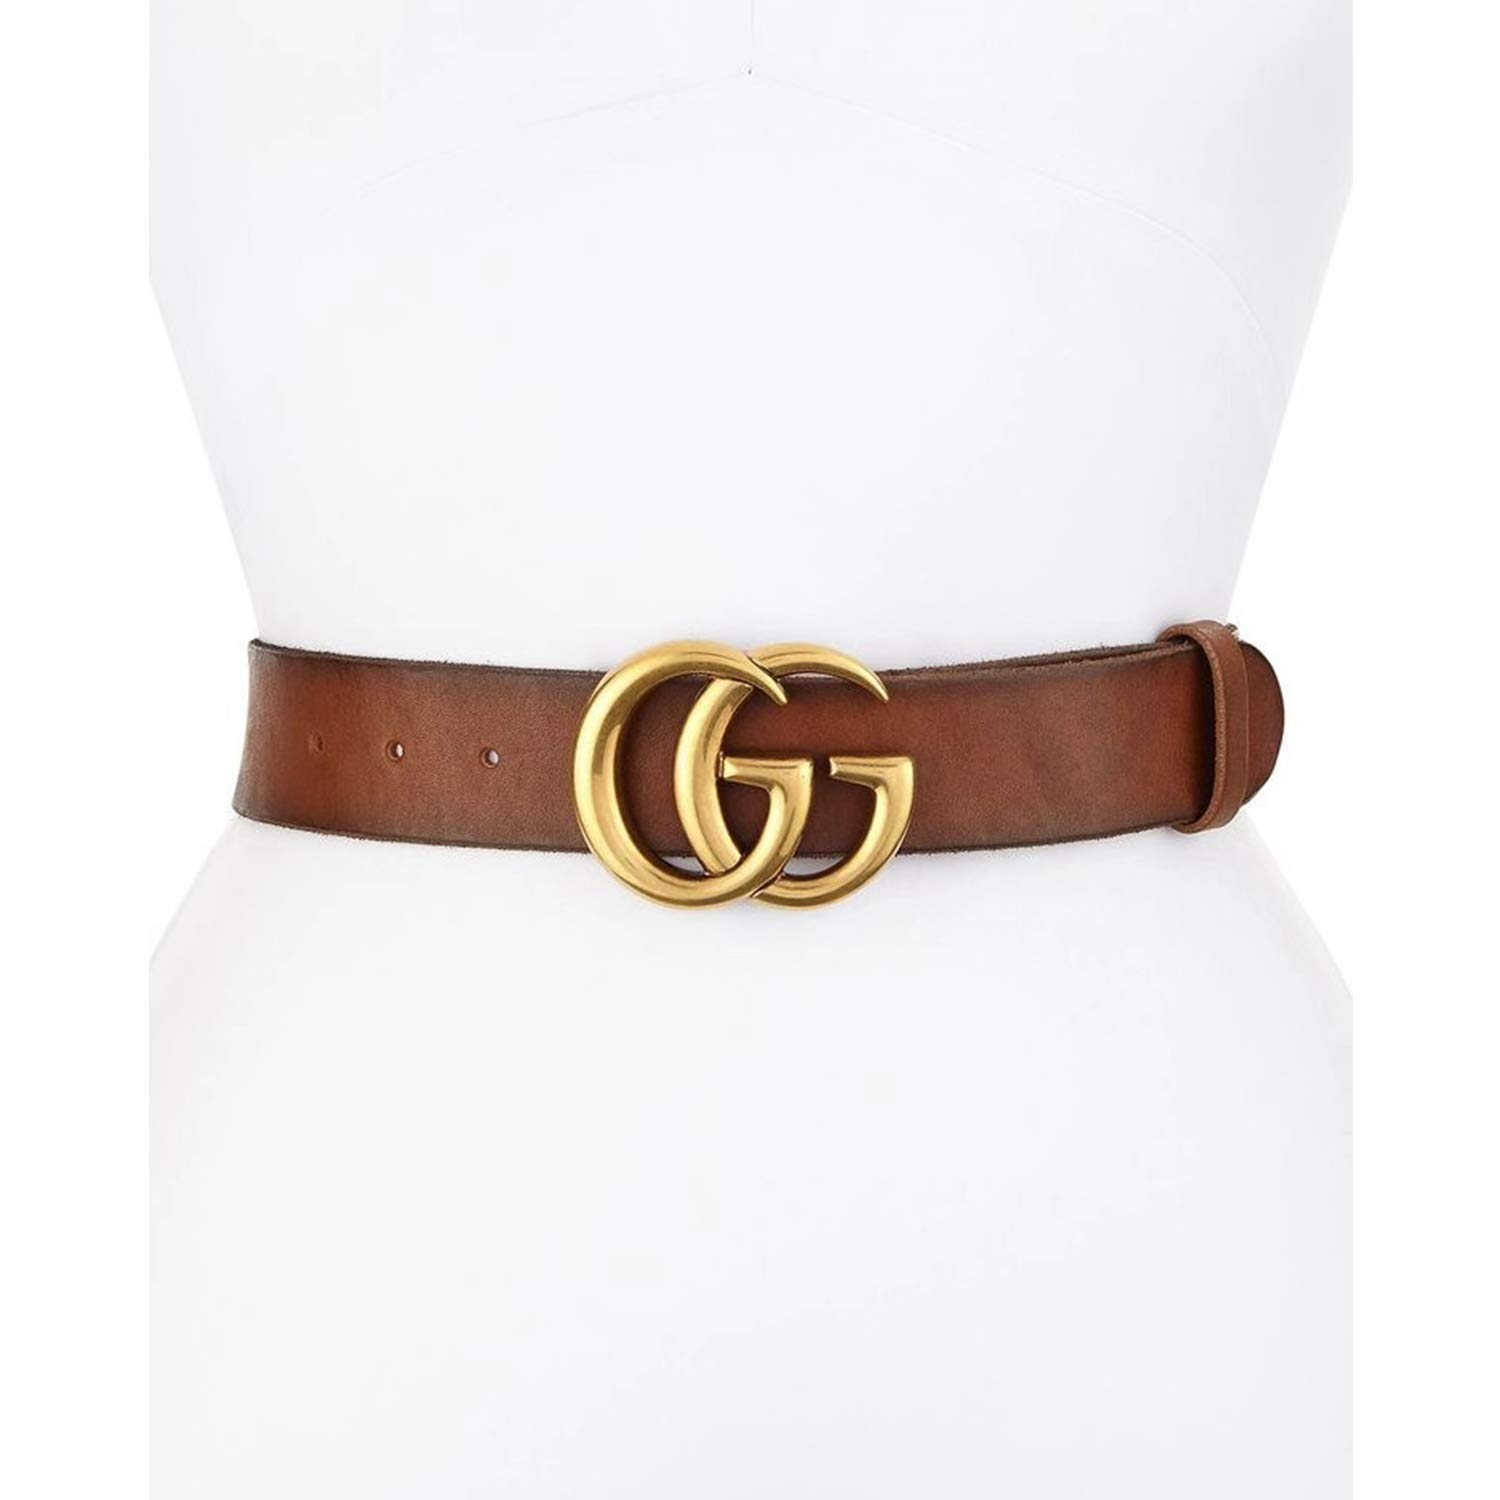 GG G Replica Belt Fake Faux Belts For Women Gold Buckle Brown Leather Dress Womens